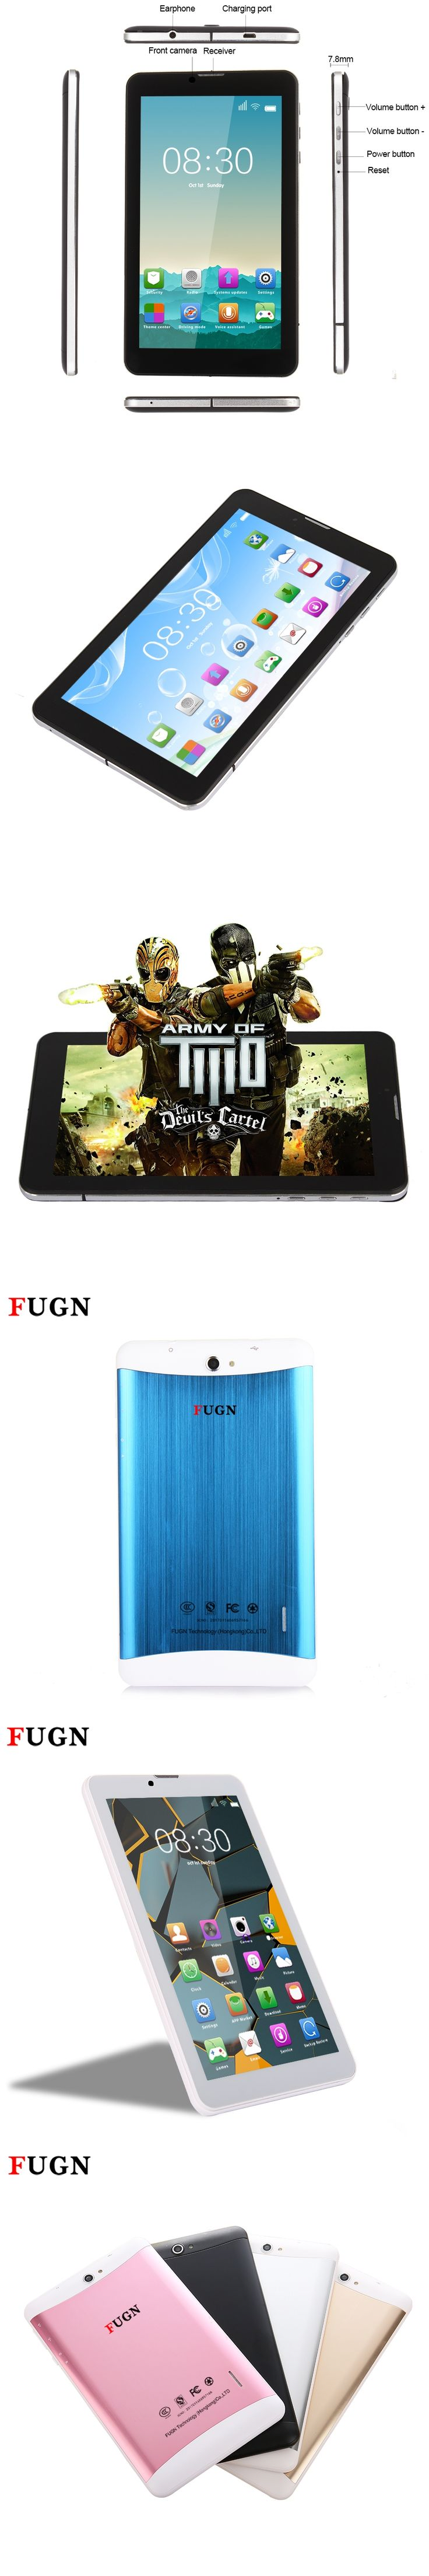 FUGN 7 inch Smart Tablet PC Android for Kids Quad Core 1GB+16GB Wifi Dual Cameras 3g Phone Call Notebook Tablets with Keyboard